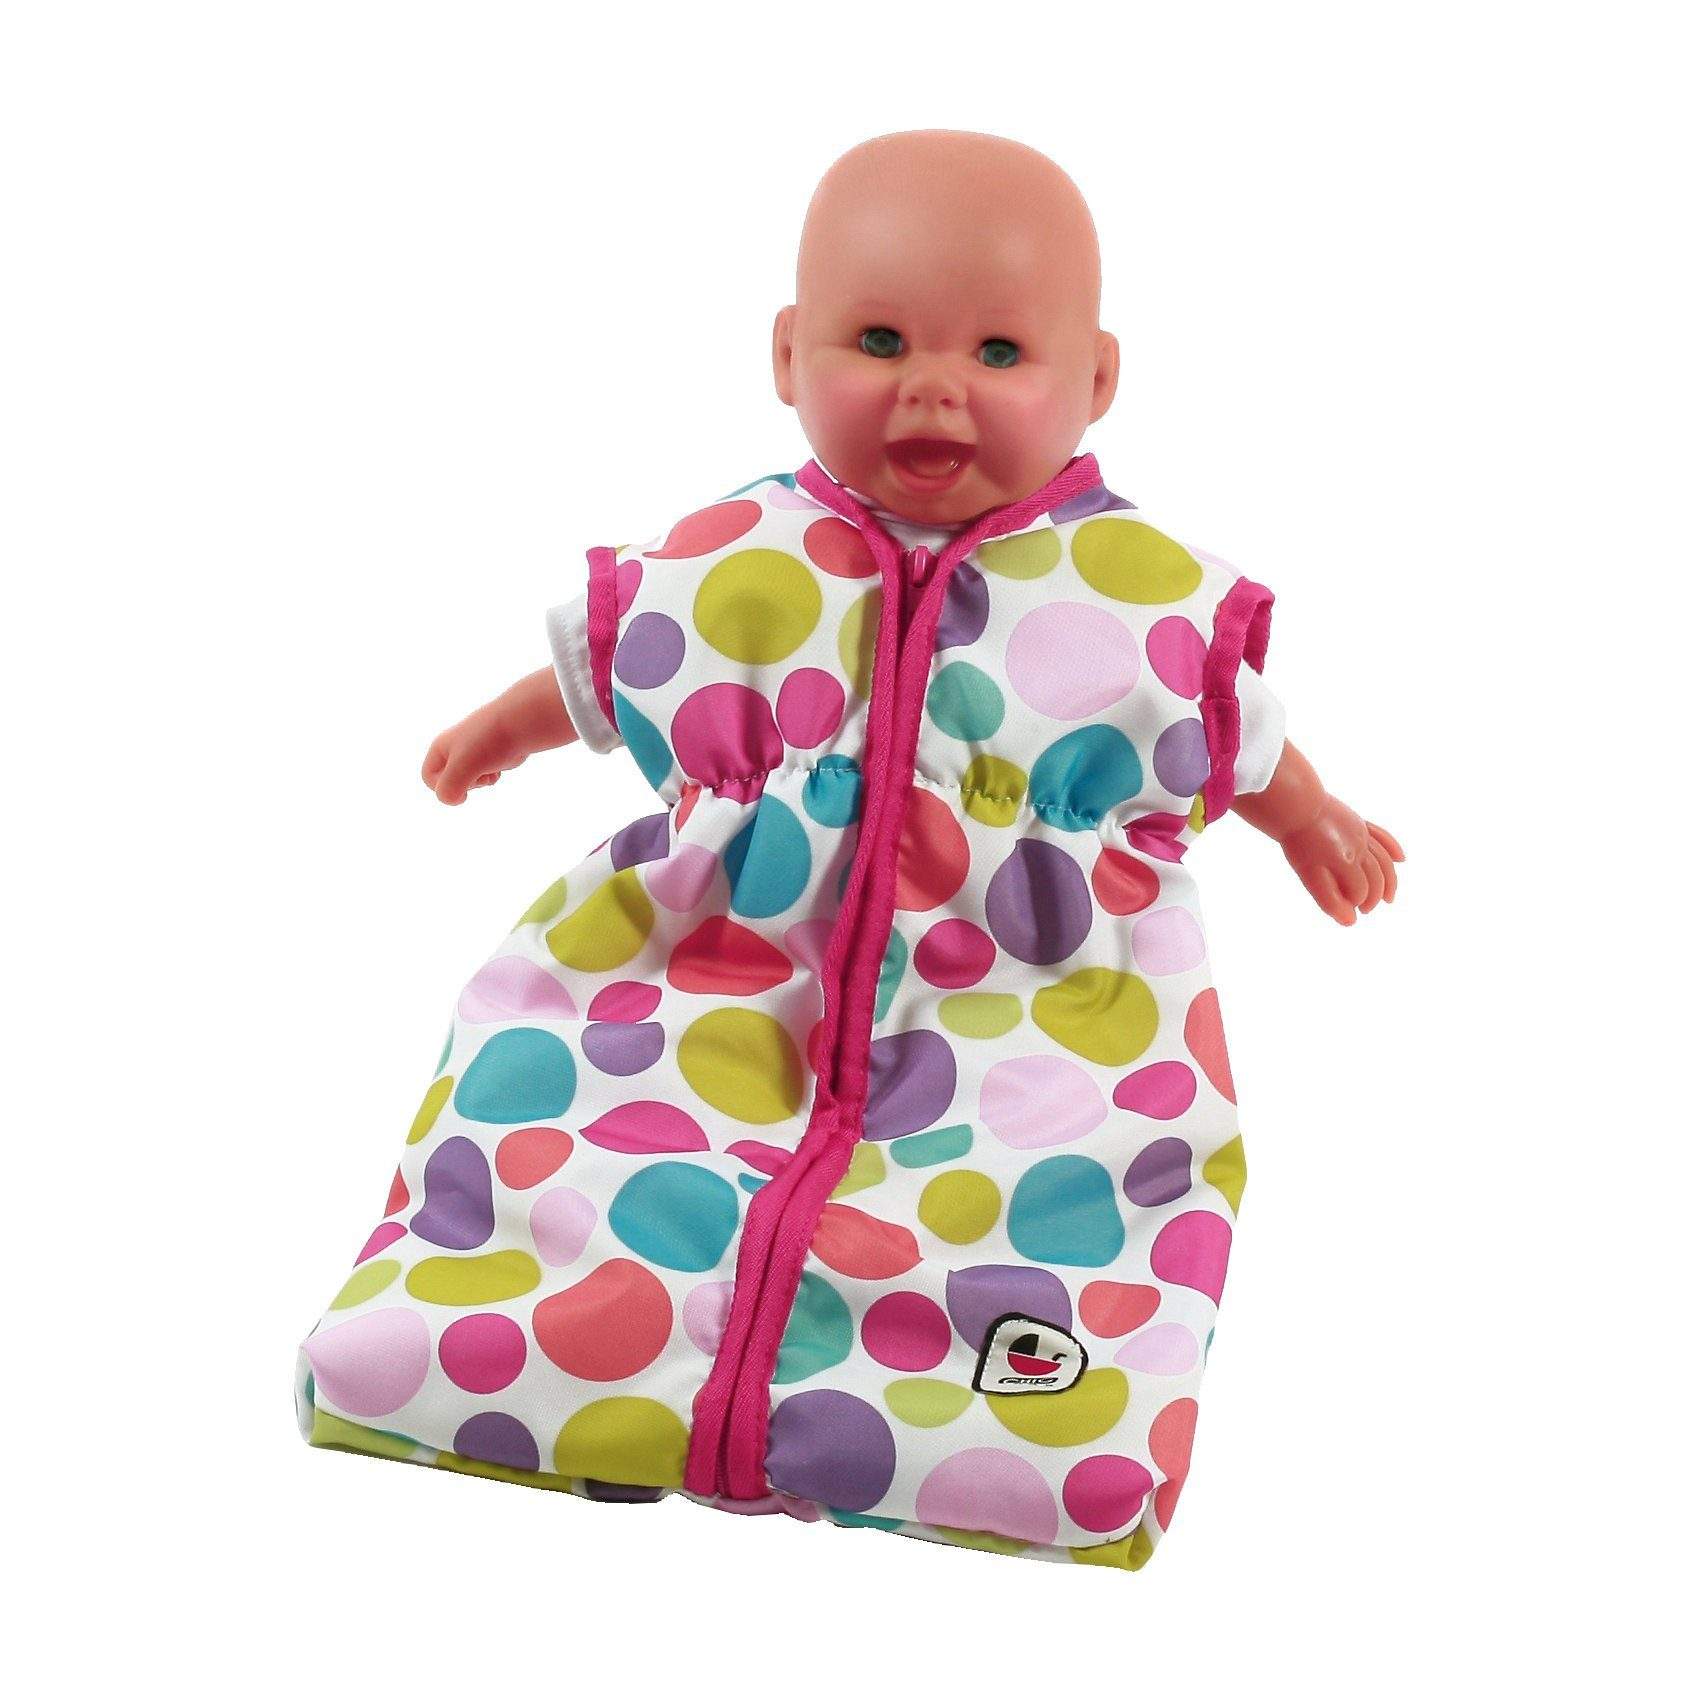 CHIC 2000 Puppen-Schlafsack, Pinky Bubbles